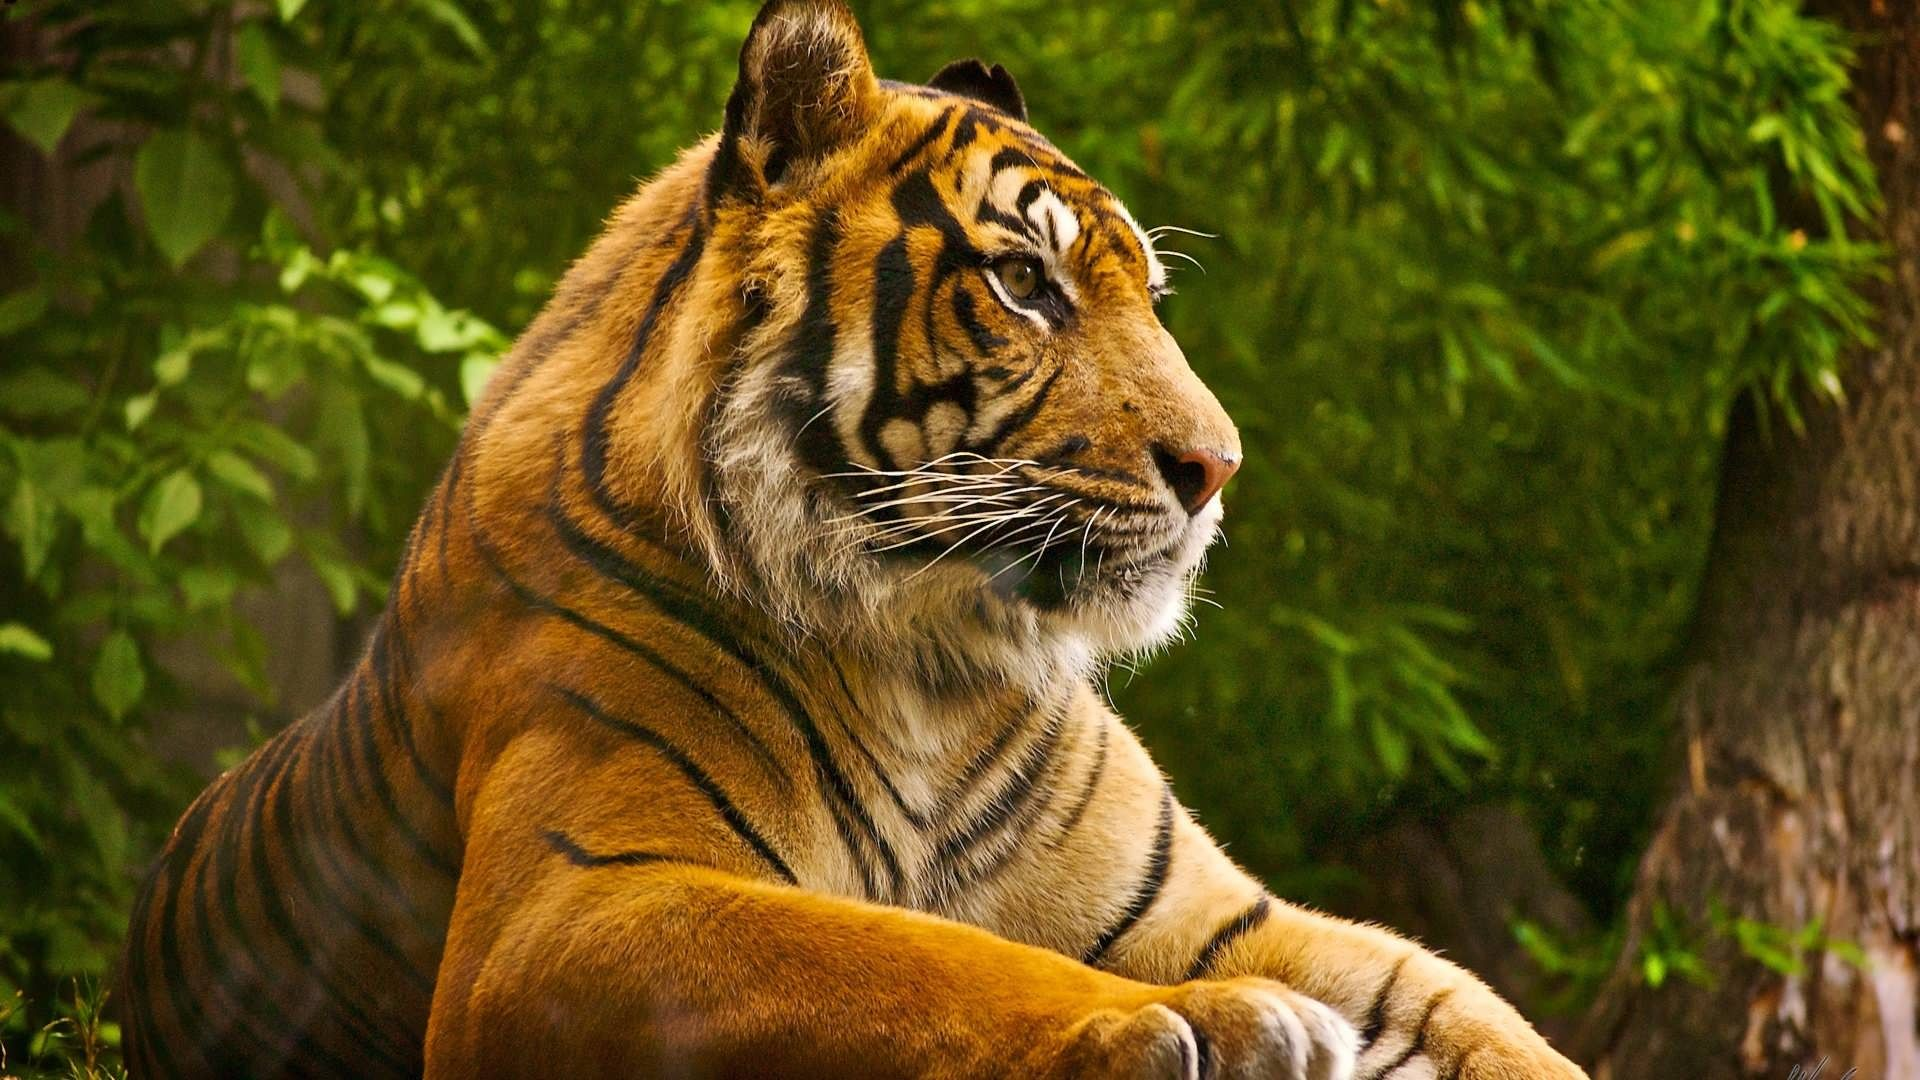 Alone Tiger 1080p Free Hd Wallpapers For Pc Pet Tiger Tiger Pictures Animals Beautiful